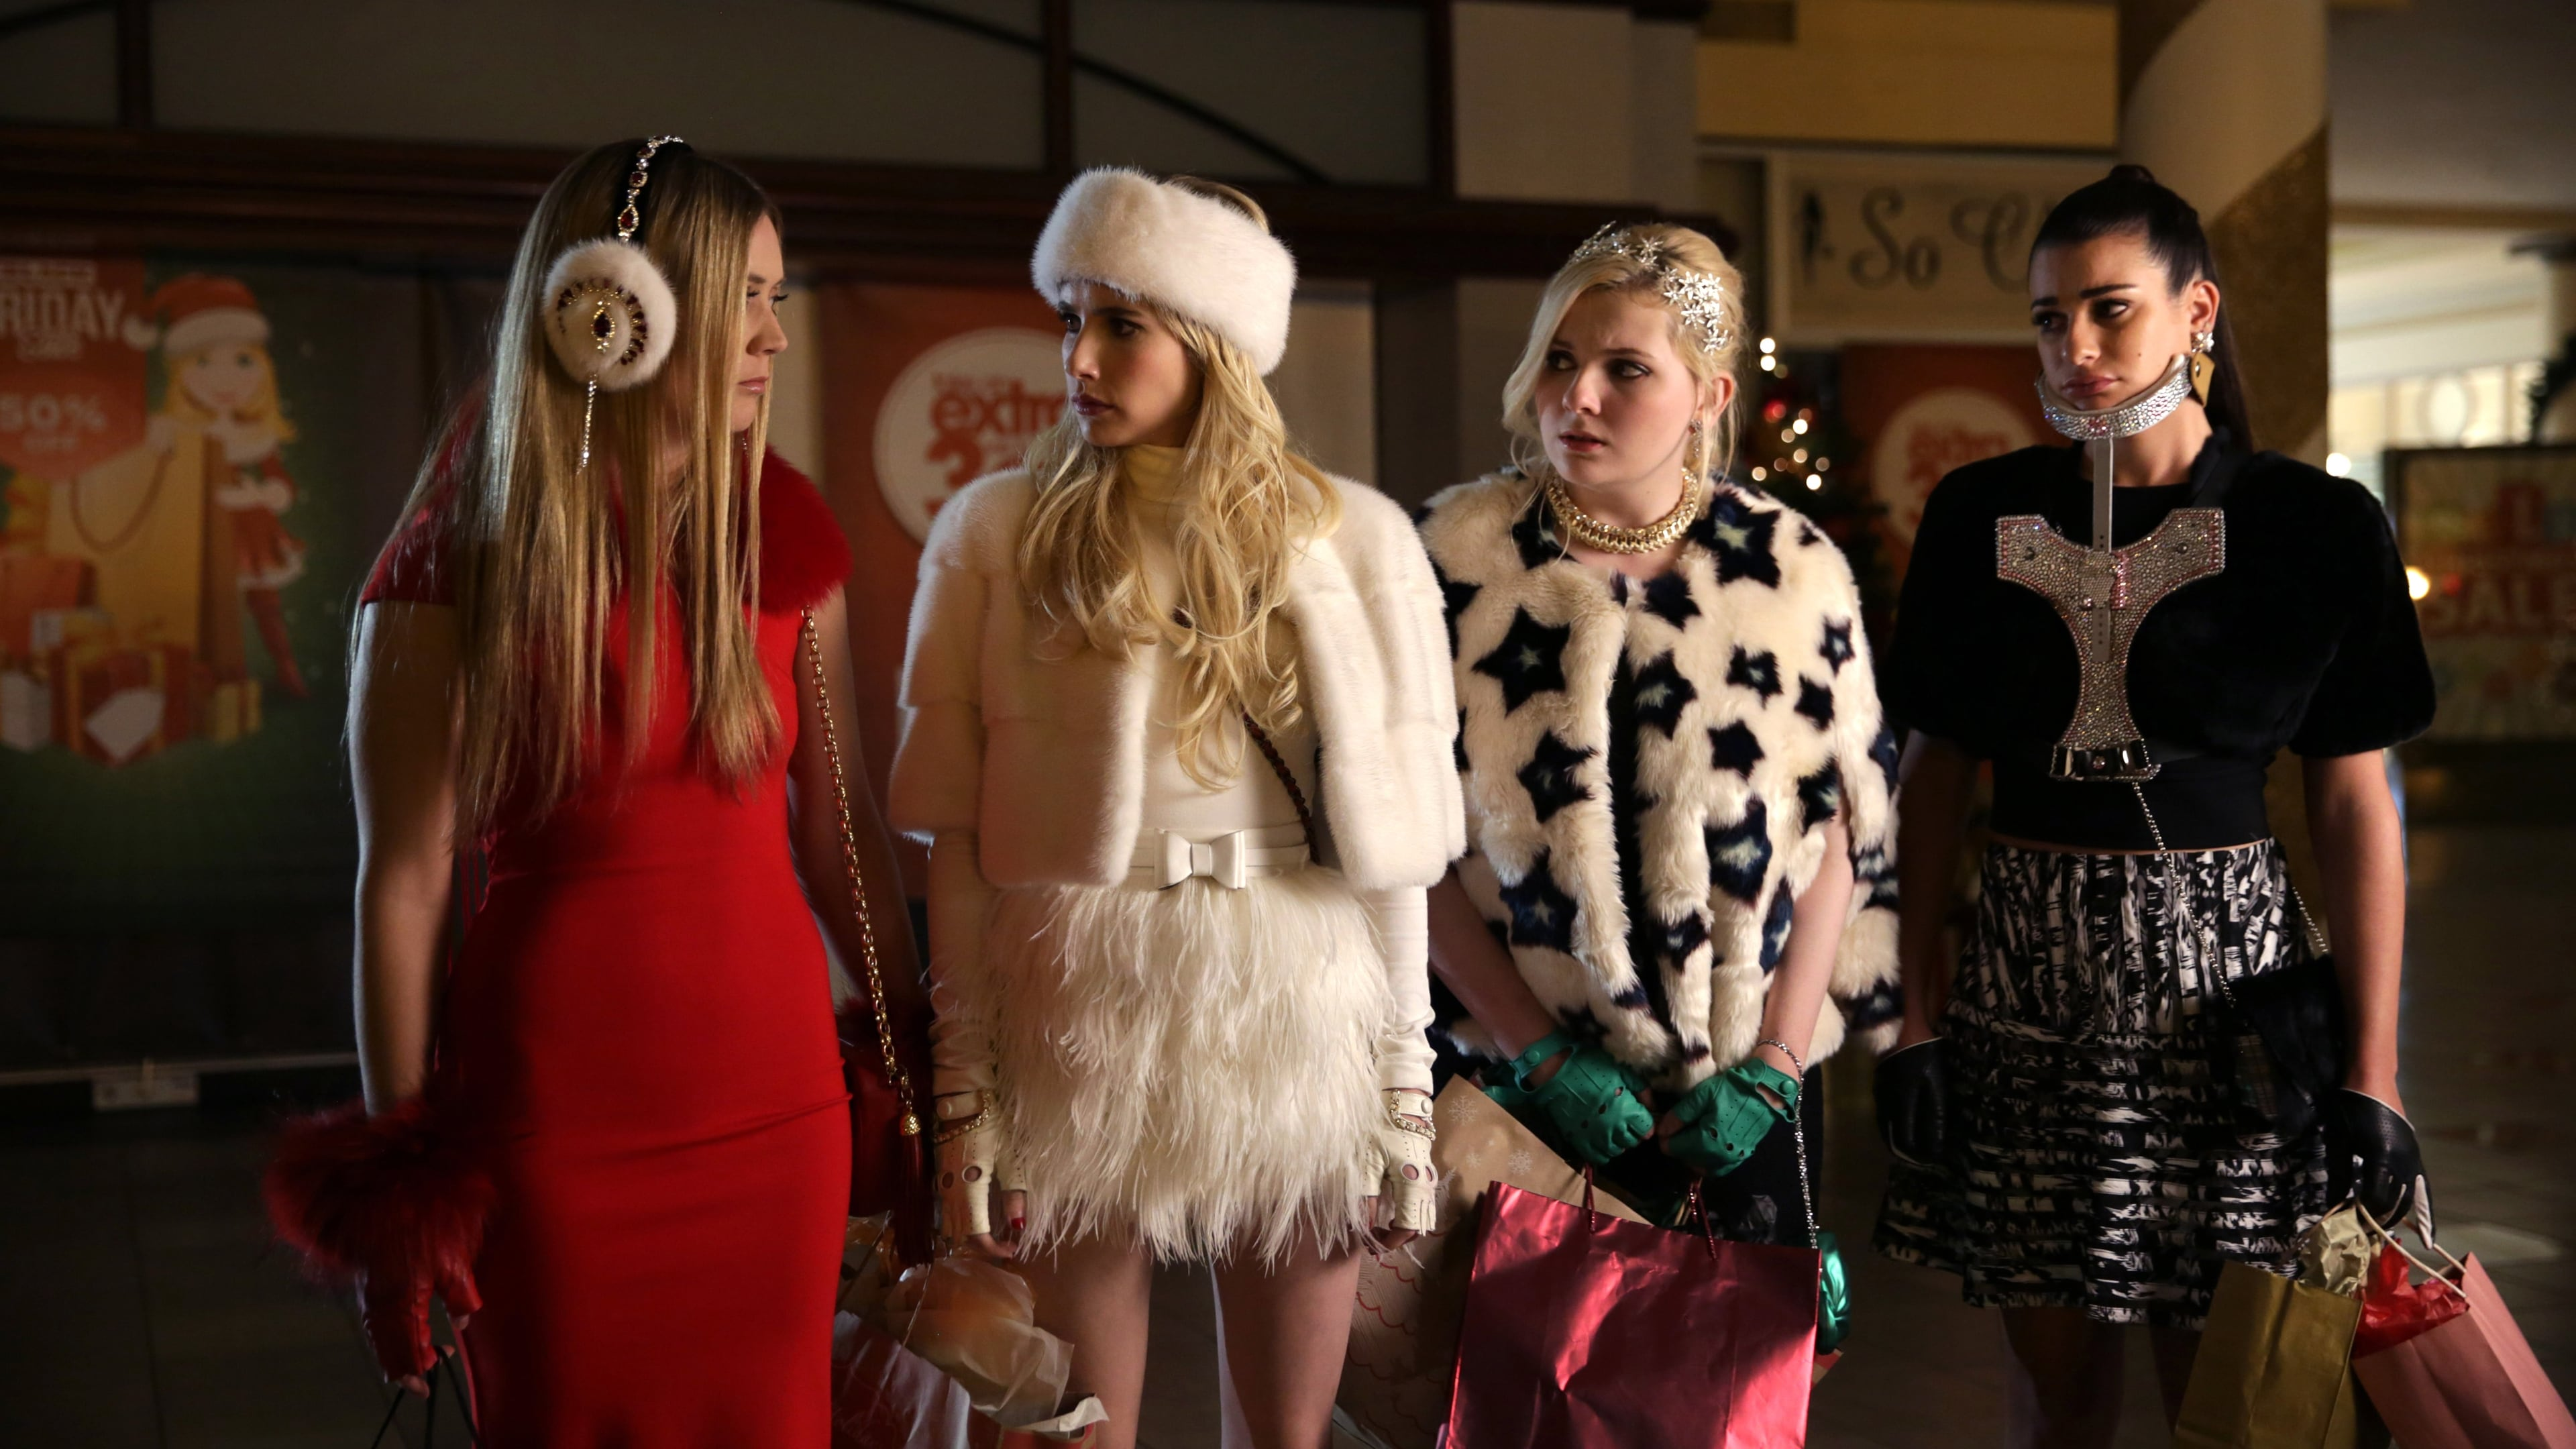 scream queens season 1 episode 11 s01e11 openload watch free